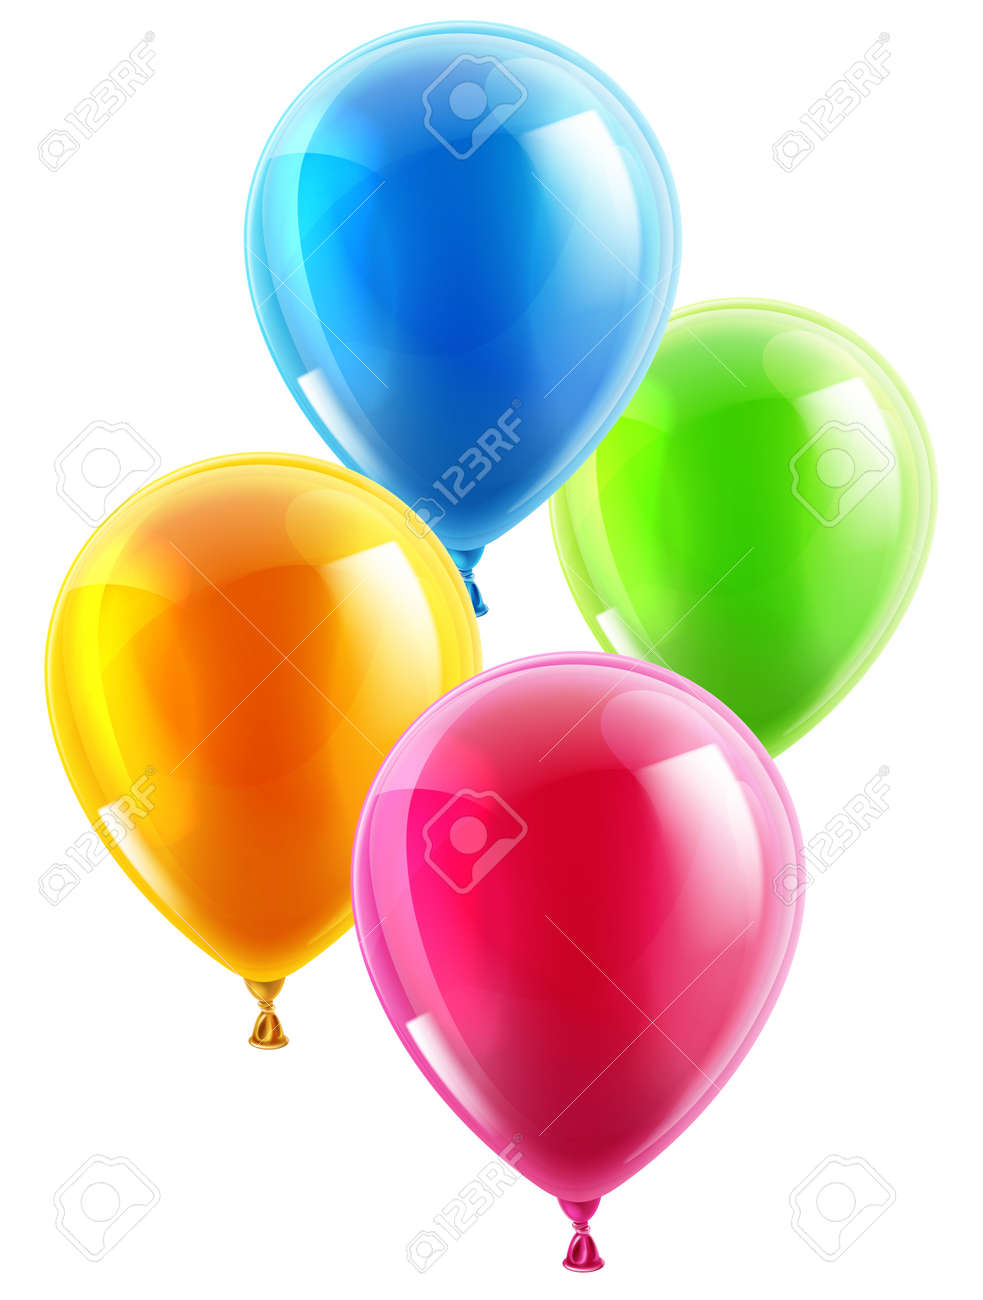 An illustration of a set of colourful birthday or party balloons - 27253795